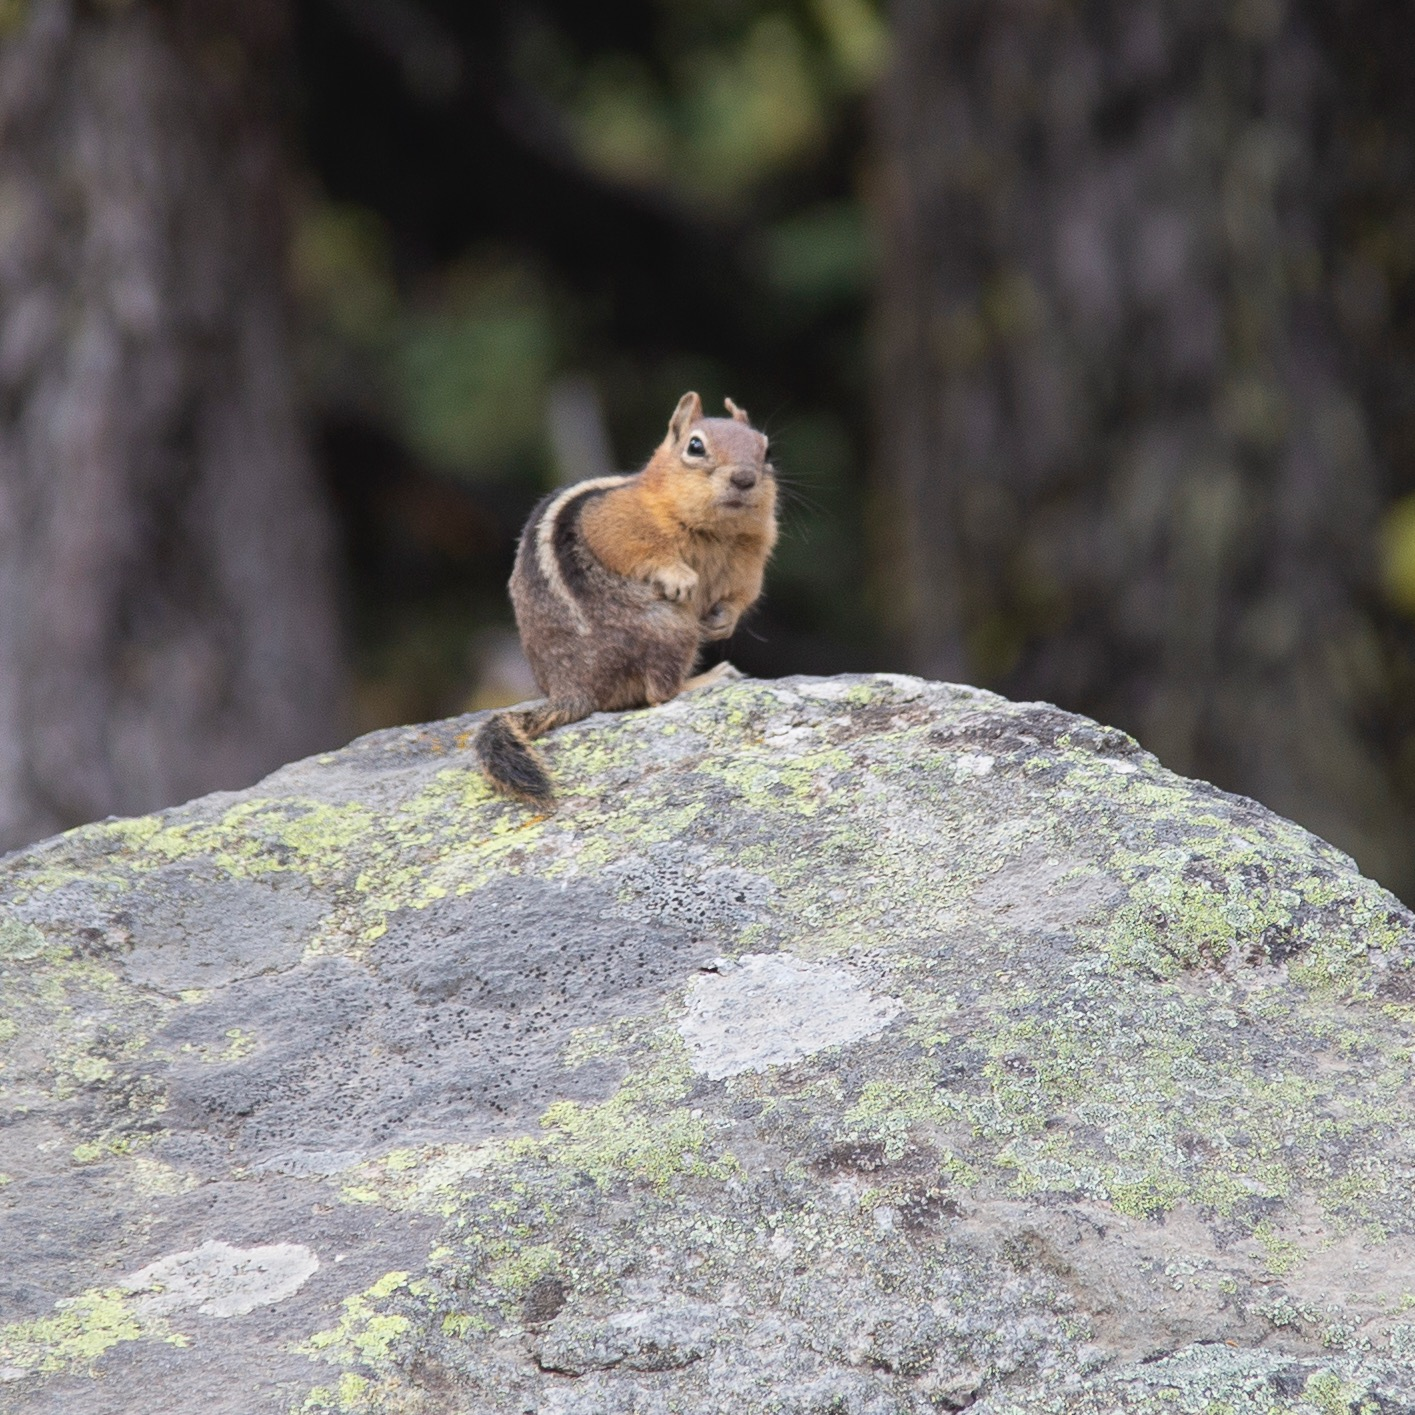 This little guy was at the trailhead to see us off.